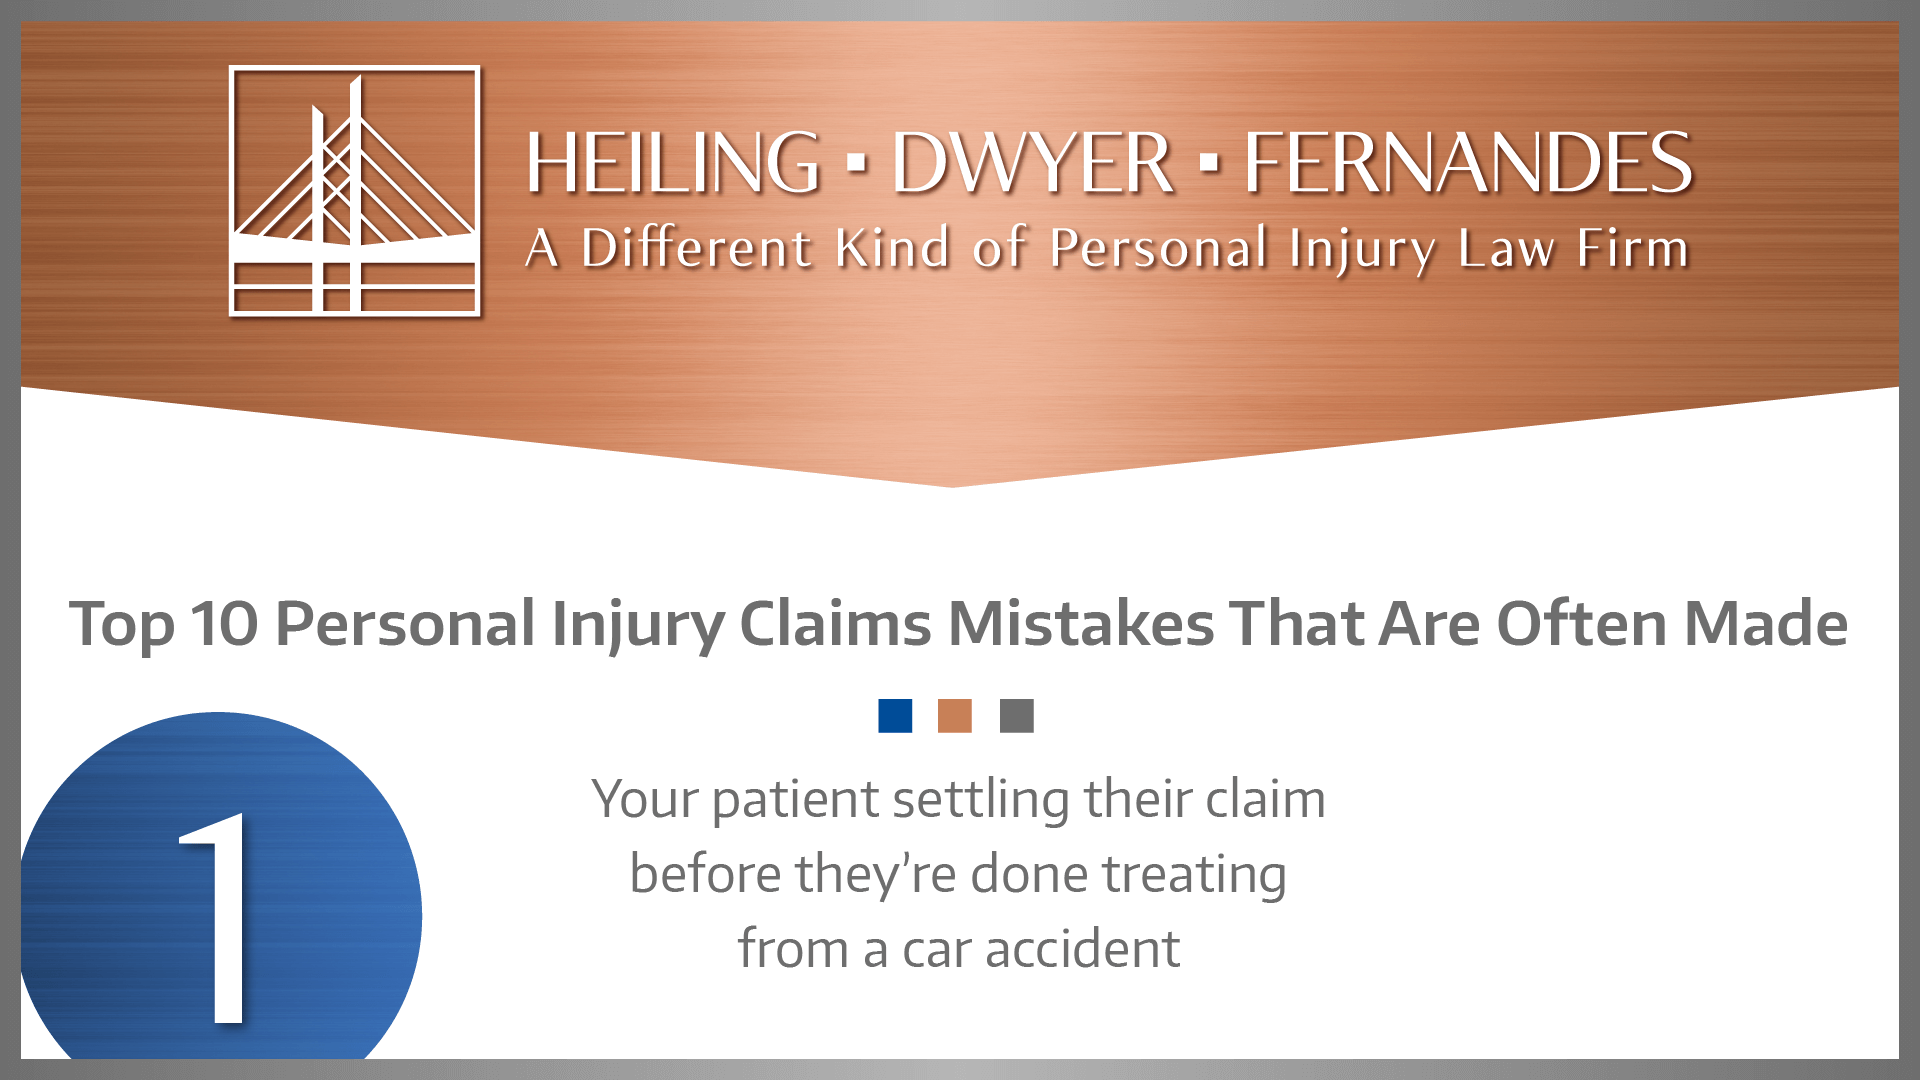 #1 MISTAKE: Your patient settling their claim before they're done treating from a car accident